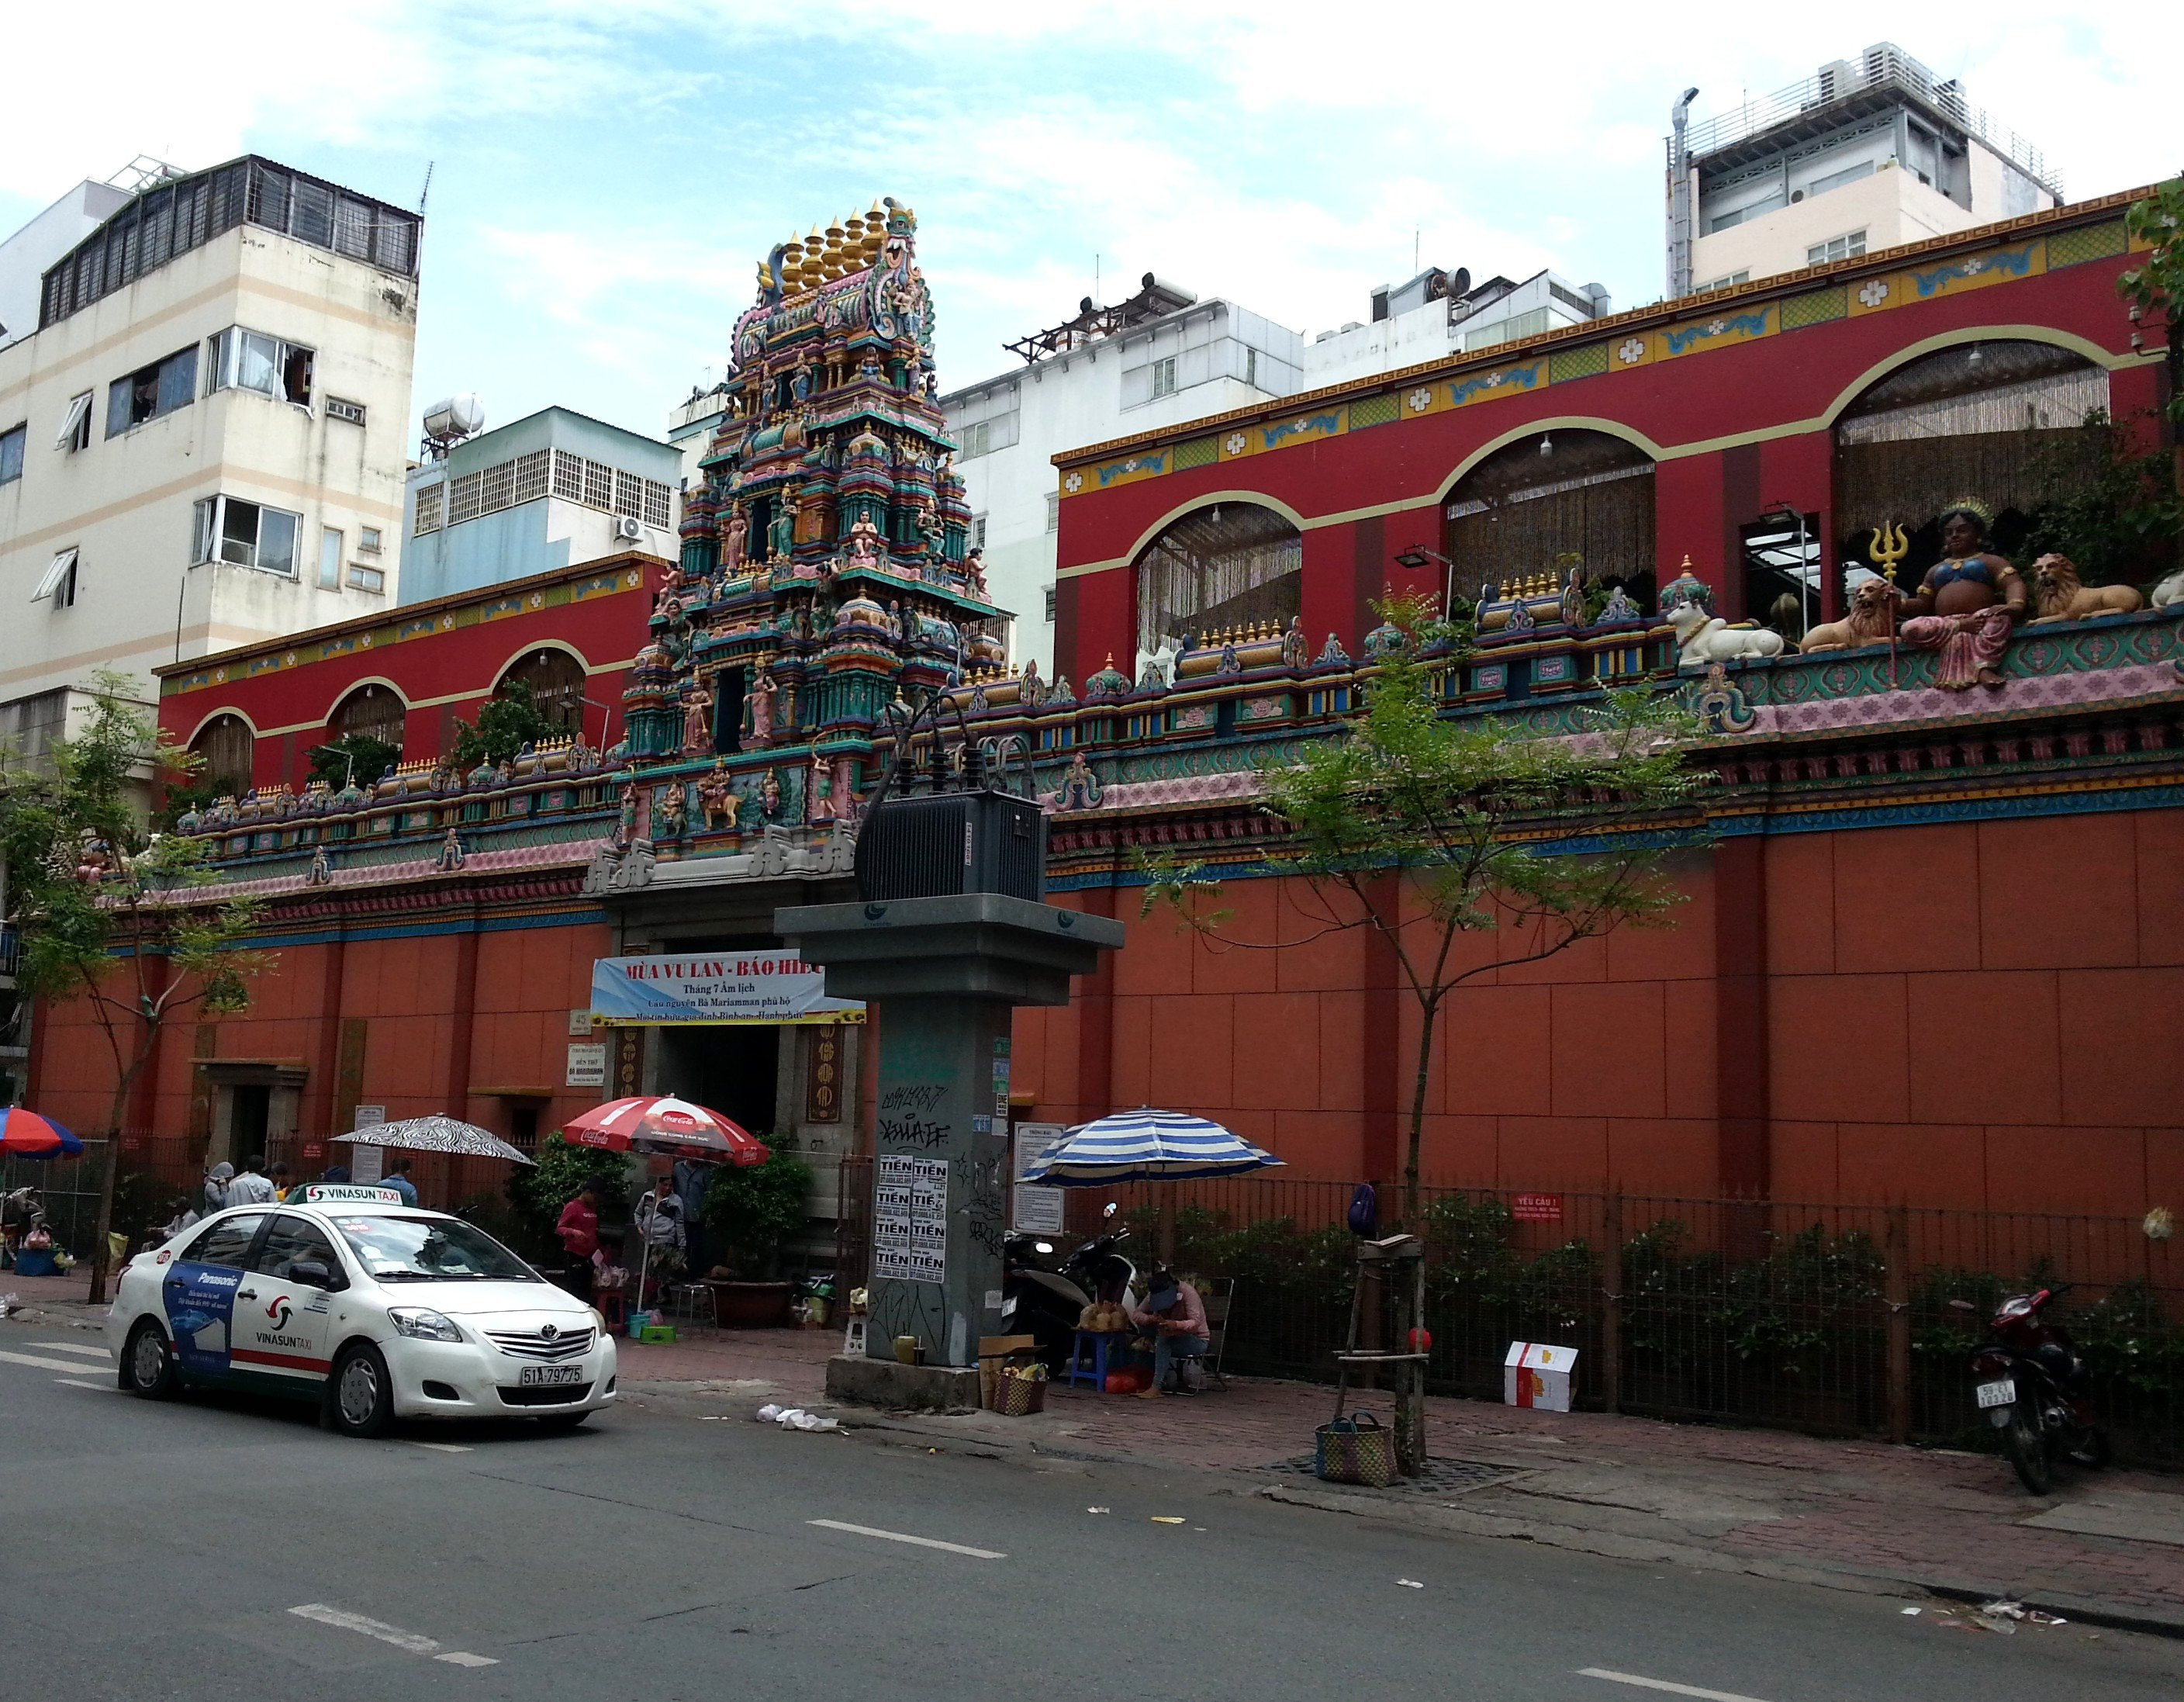 Gopuram above the entrance to the Mariamman Temple